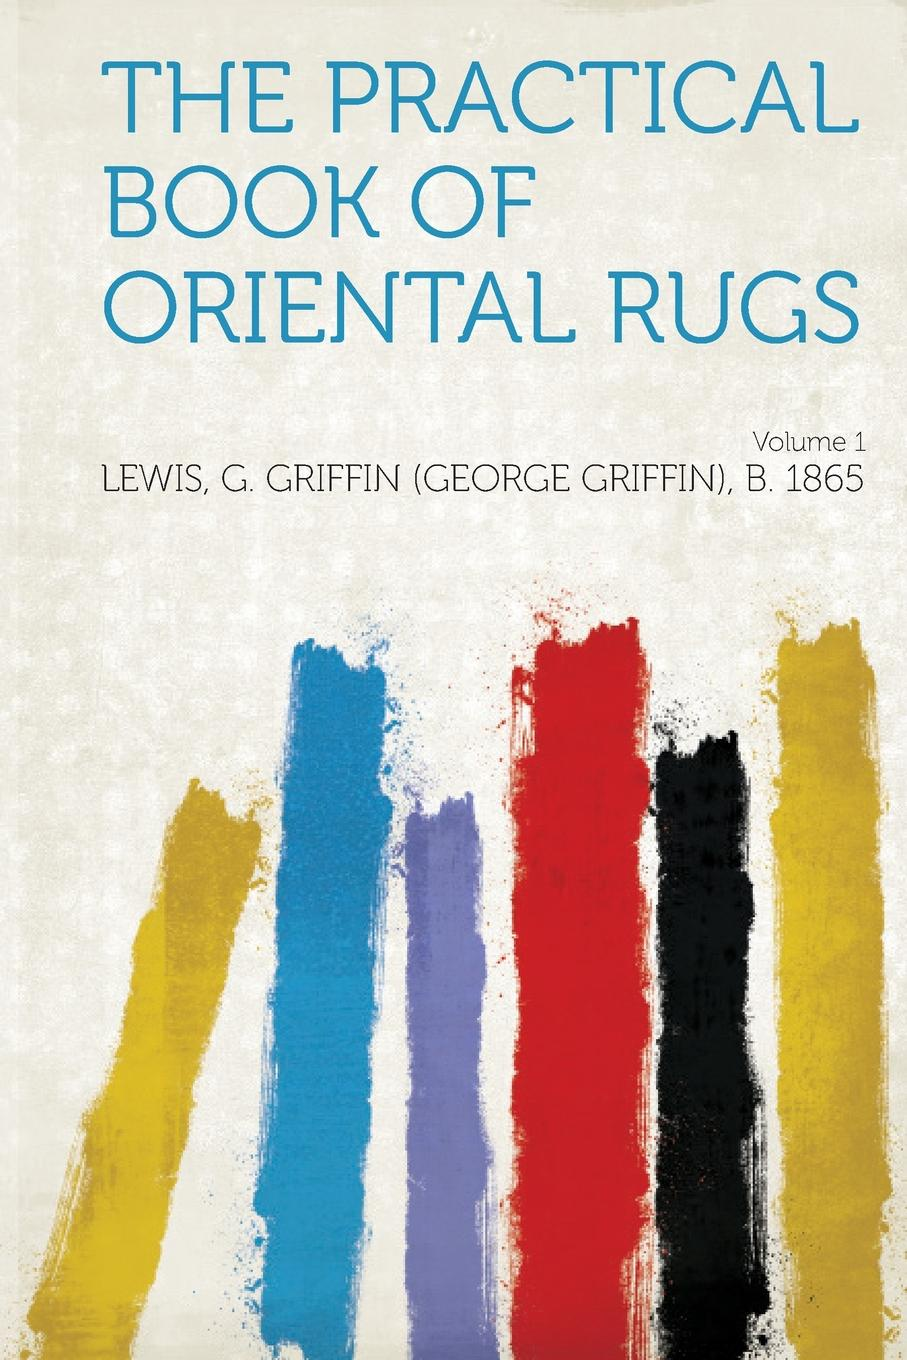 Lewis G. Griffin (George Griffin) 1865 The Practical Book of Oriental Rugs Volume 1 george griffin lewis the mystery of the oriental rug